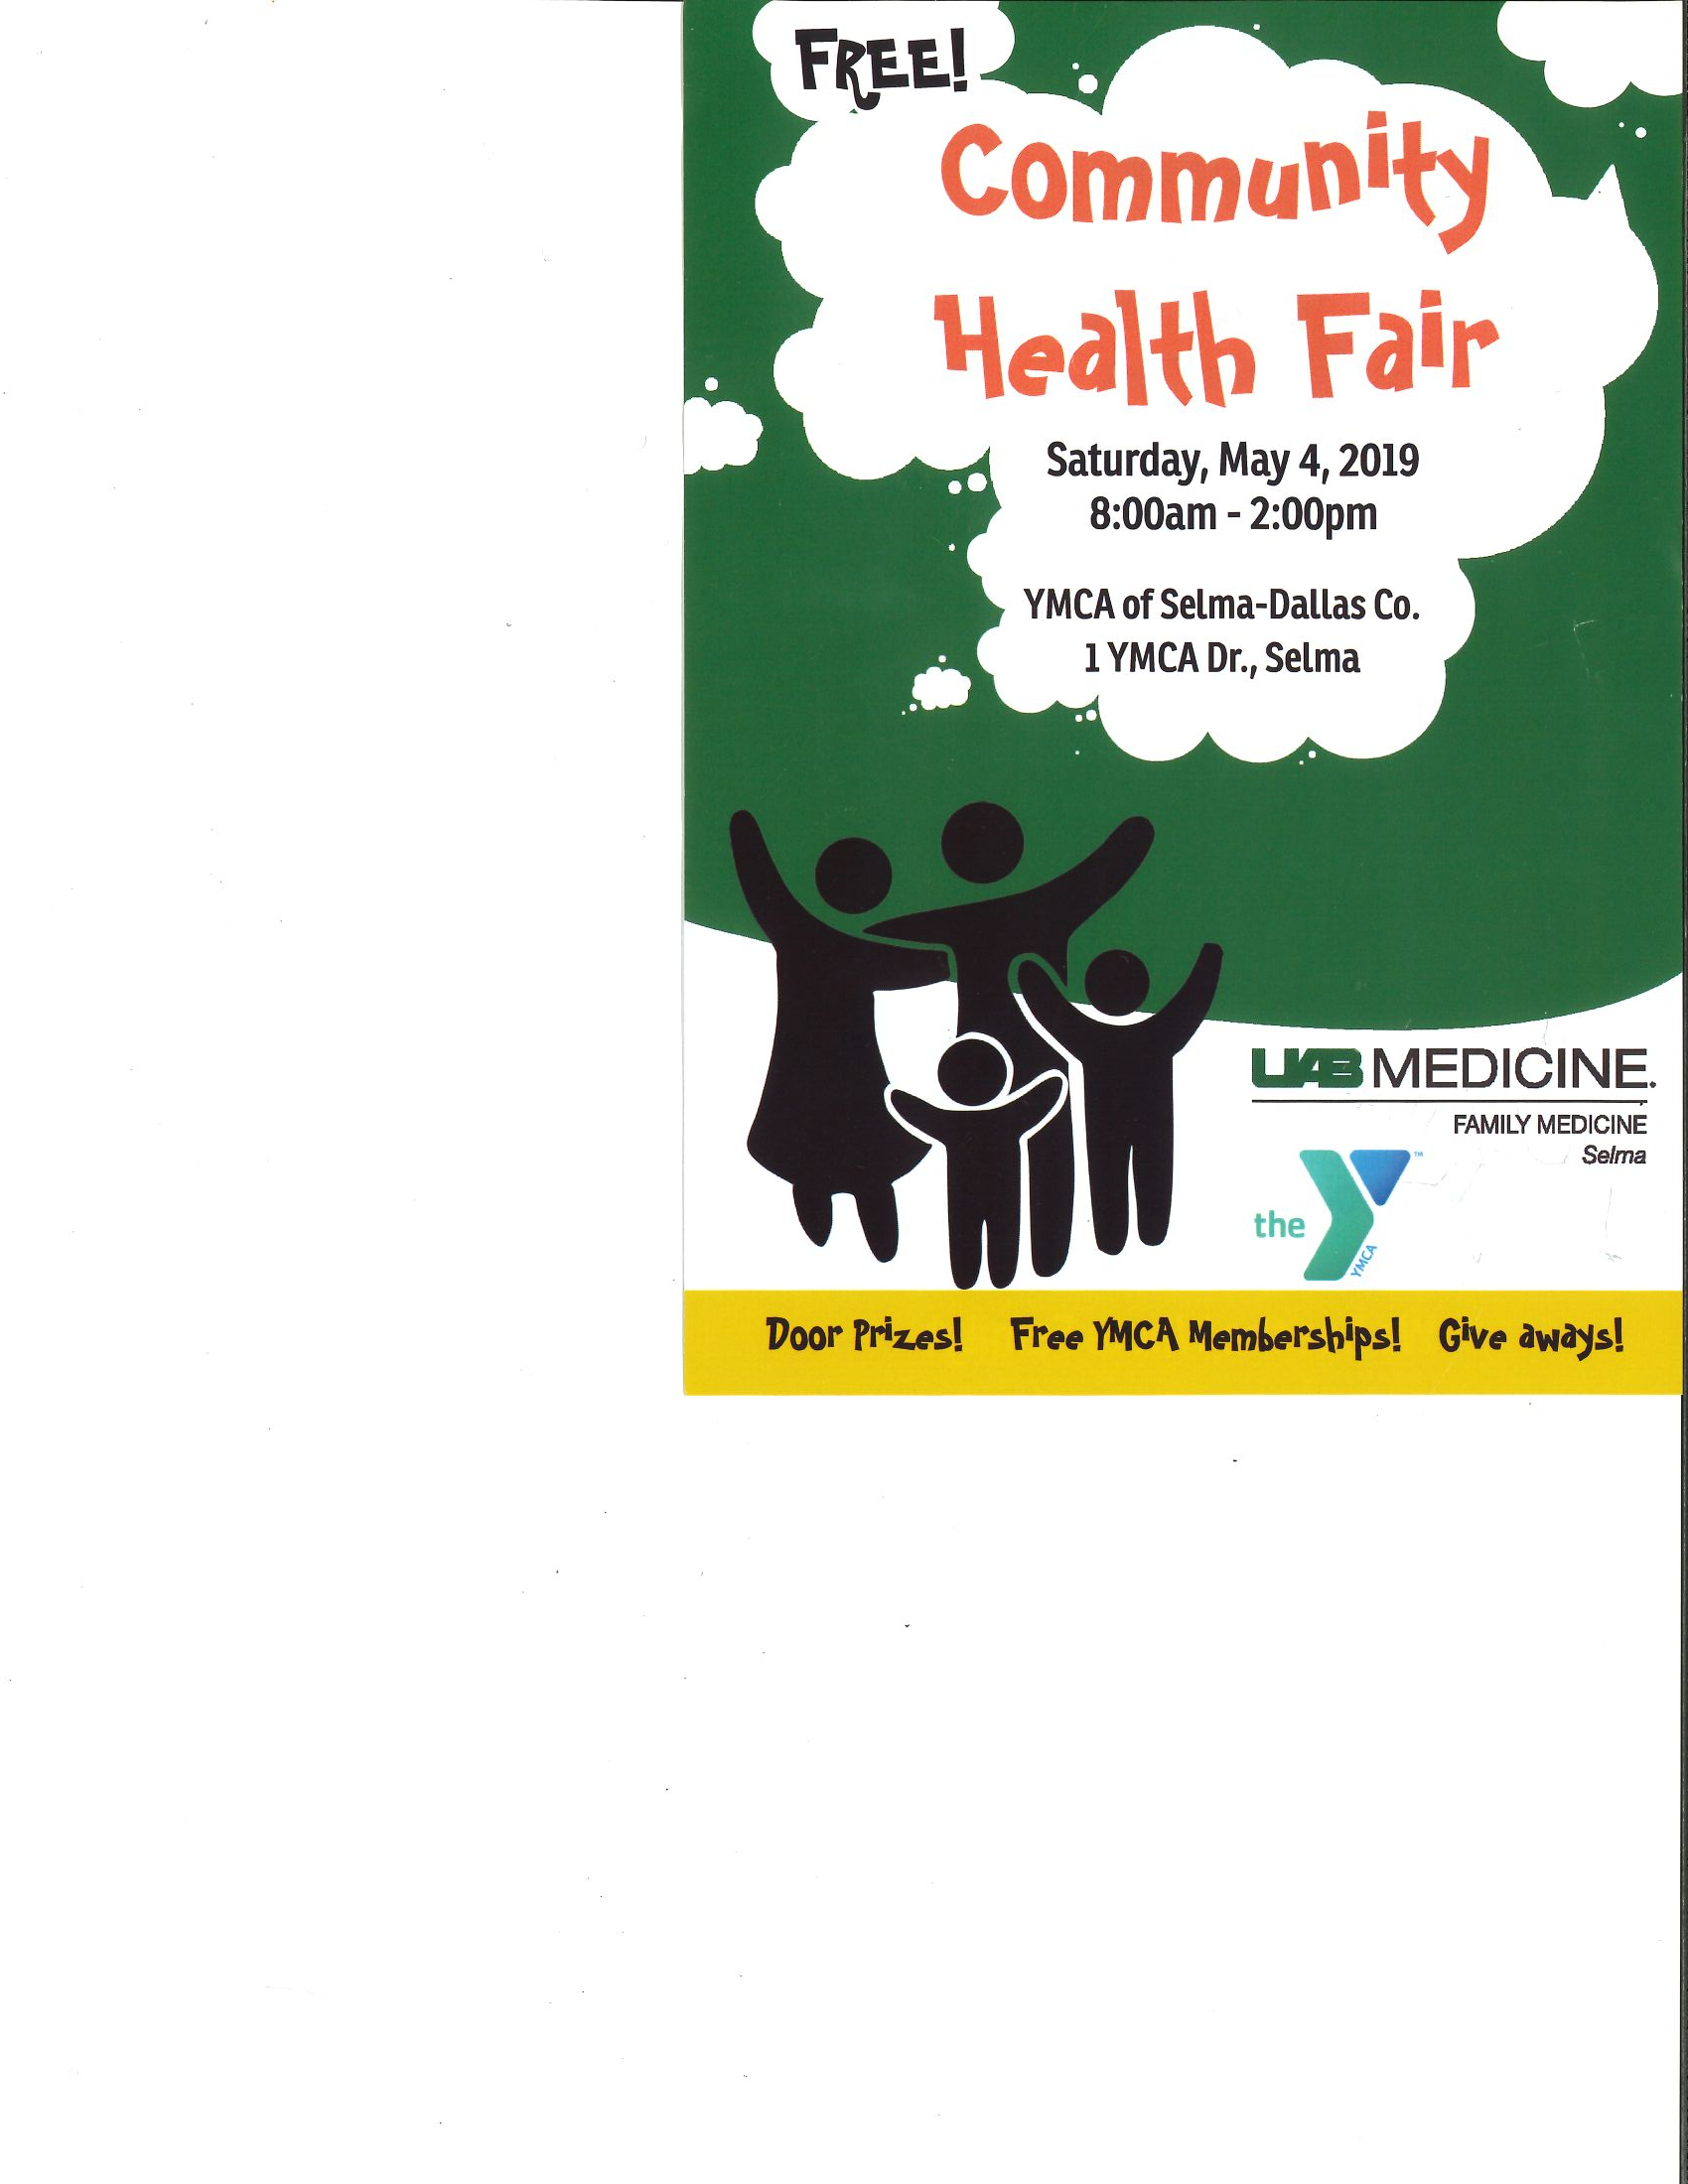 UAB Community Health Fair Page 2